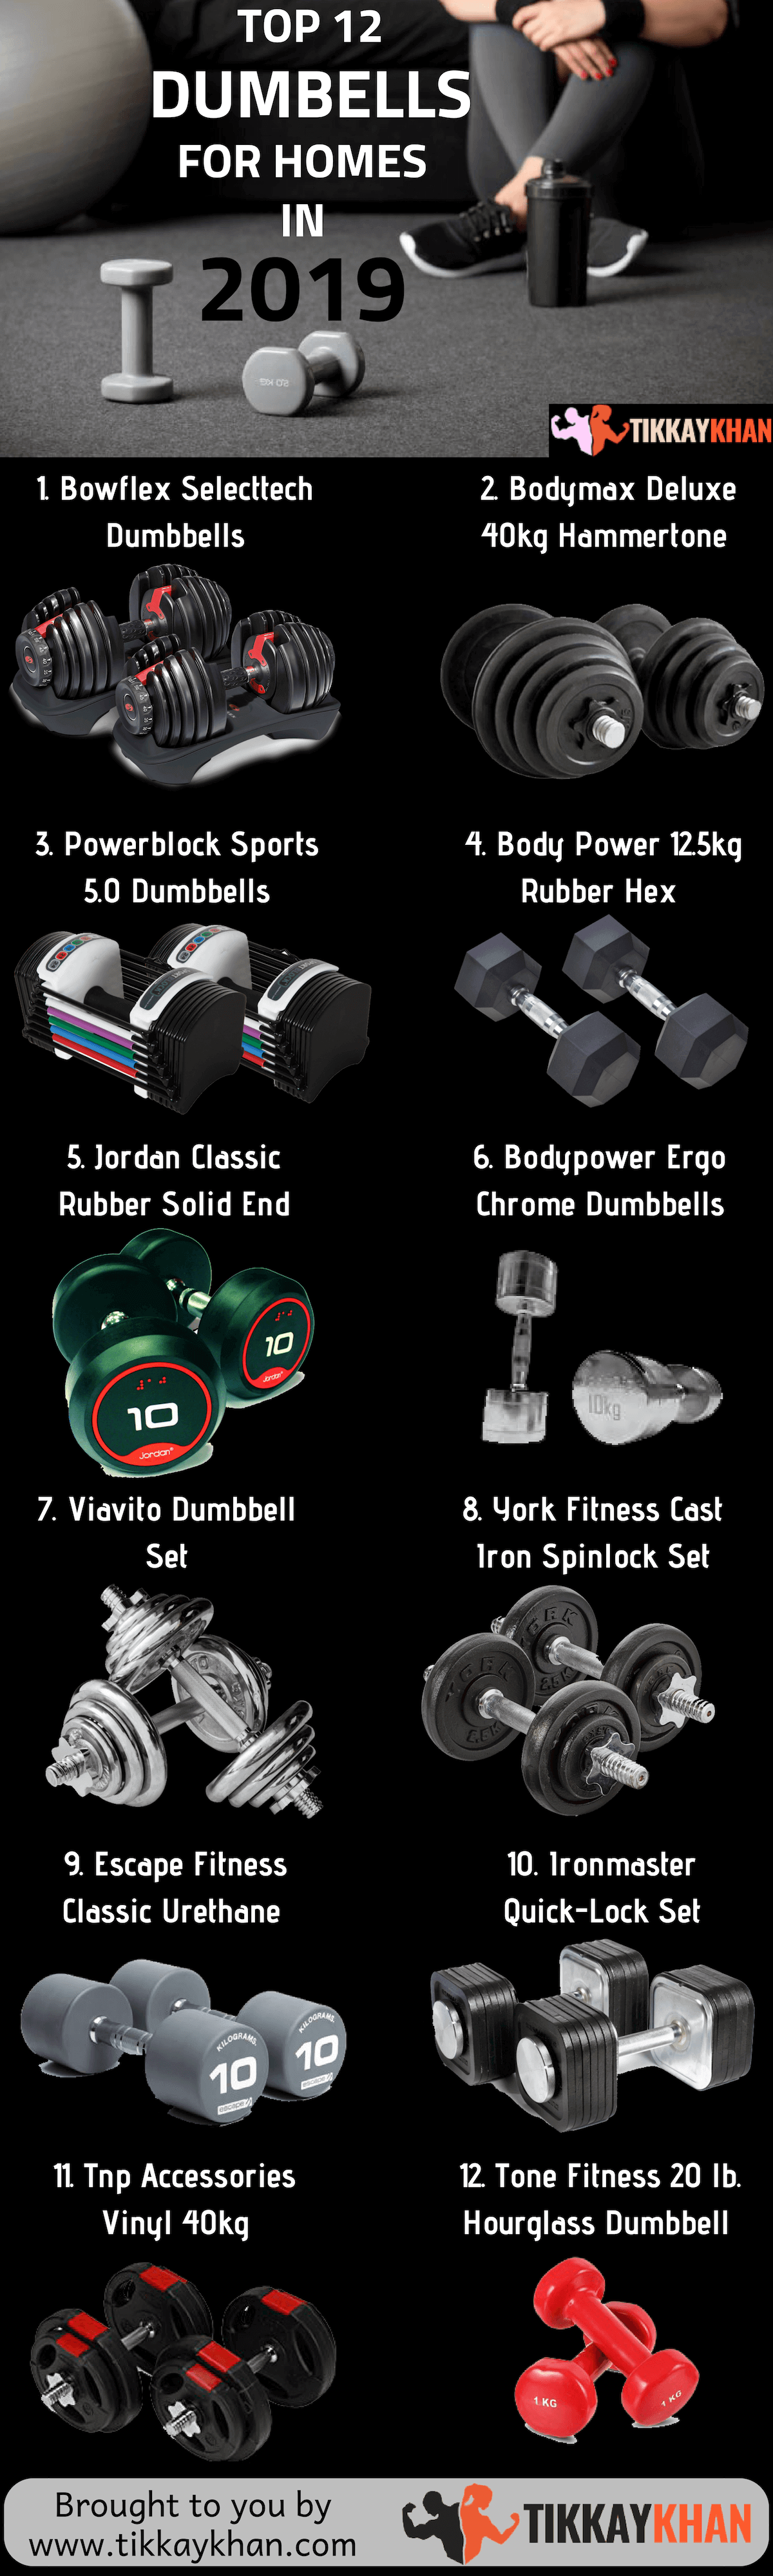 12 Best Dumbbells For Home in 2019 Infographic